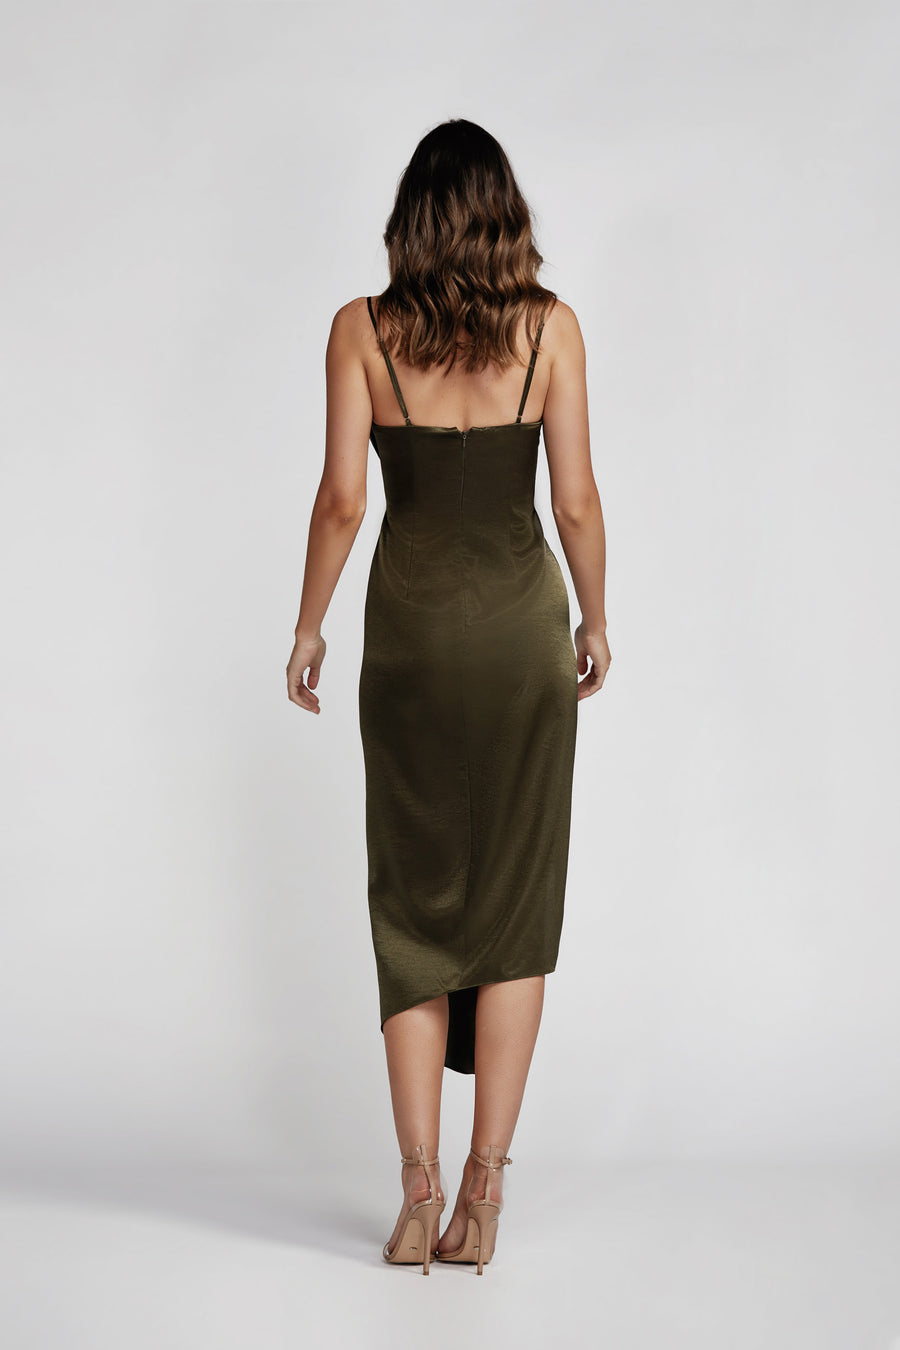 Carmen Dress - Olive Green